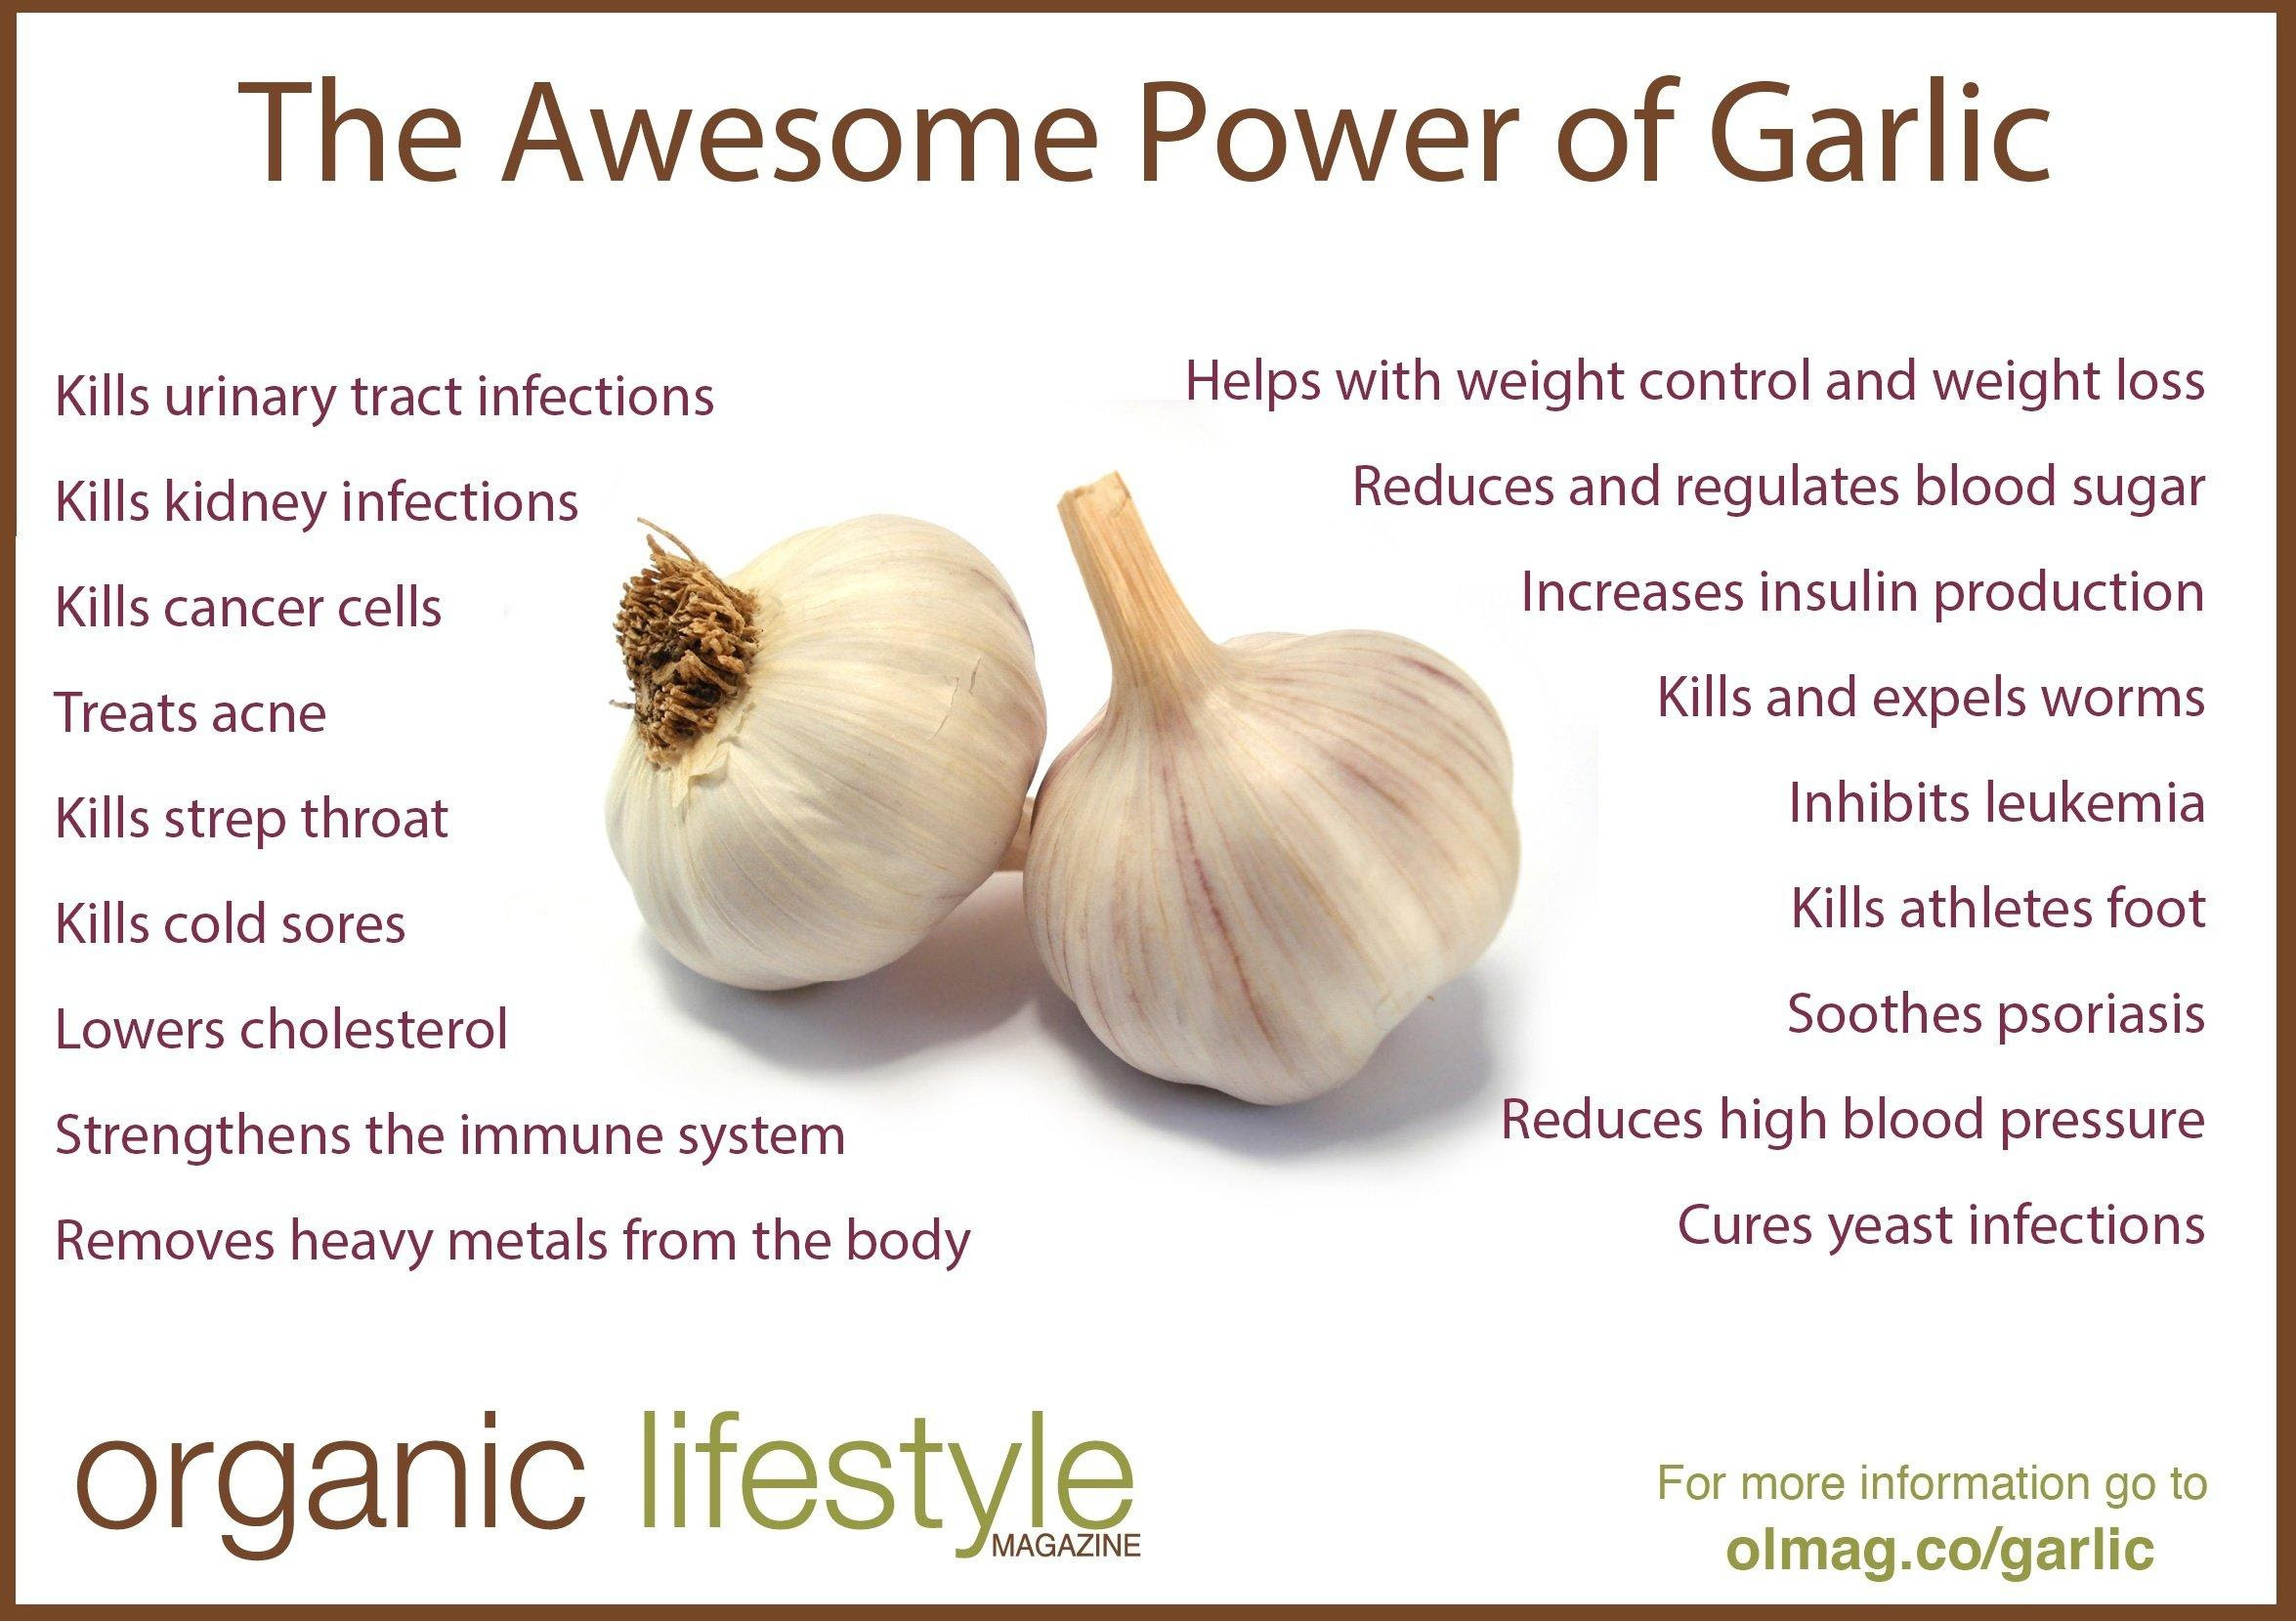 10+ Amazing Benefits Of Eating Garlic on an Empty Stomach